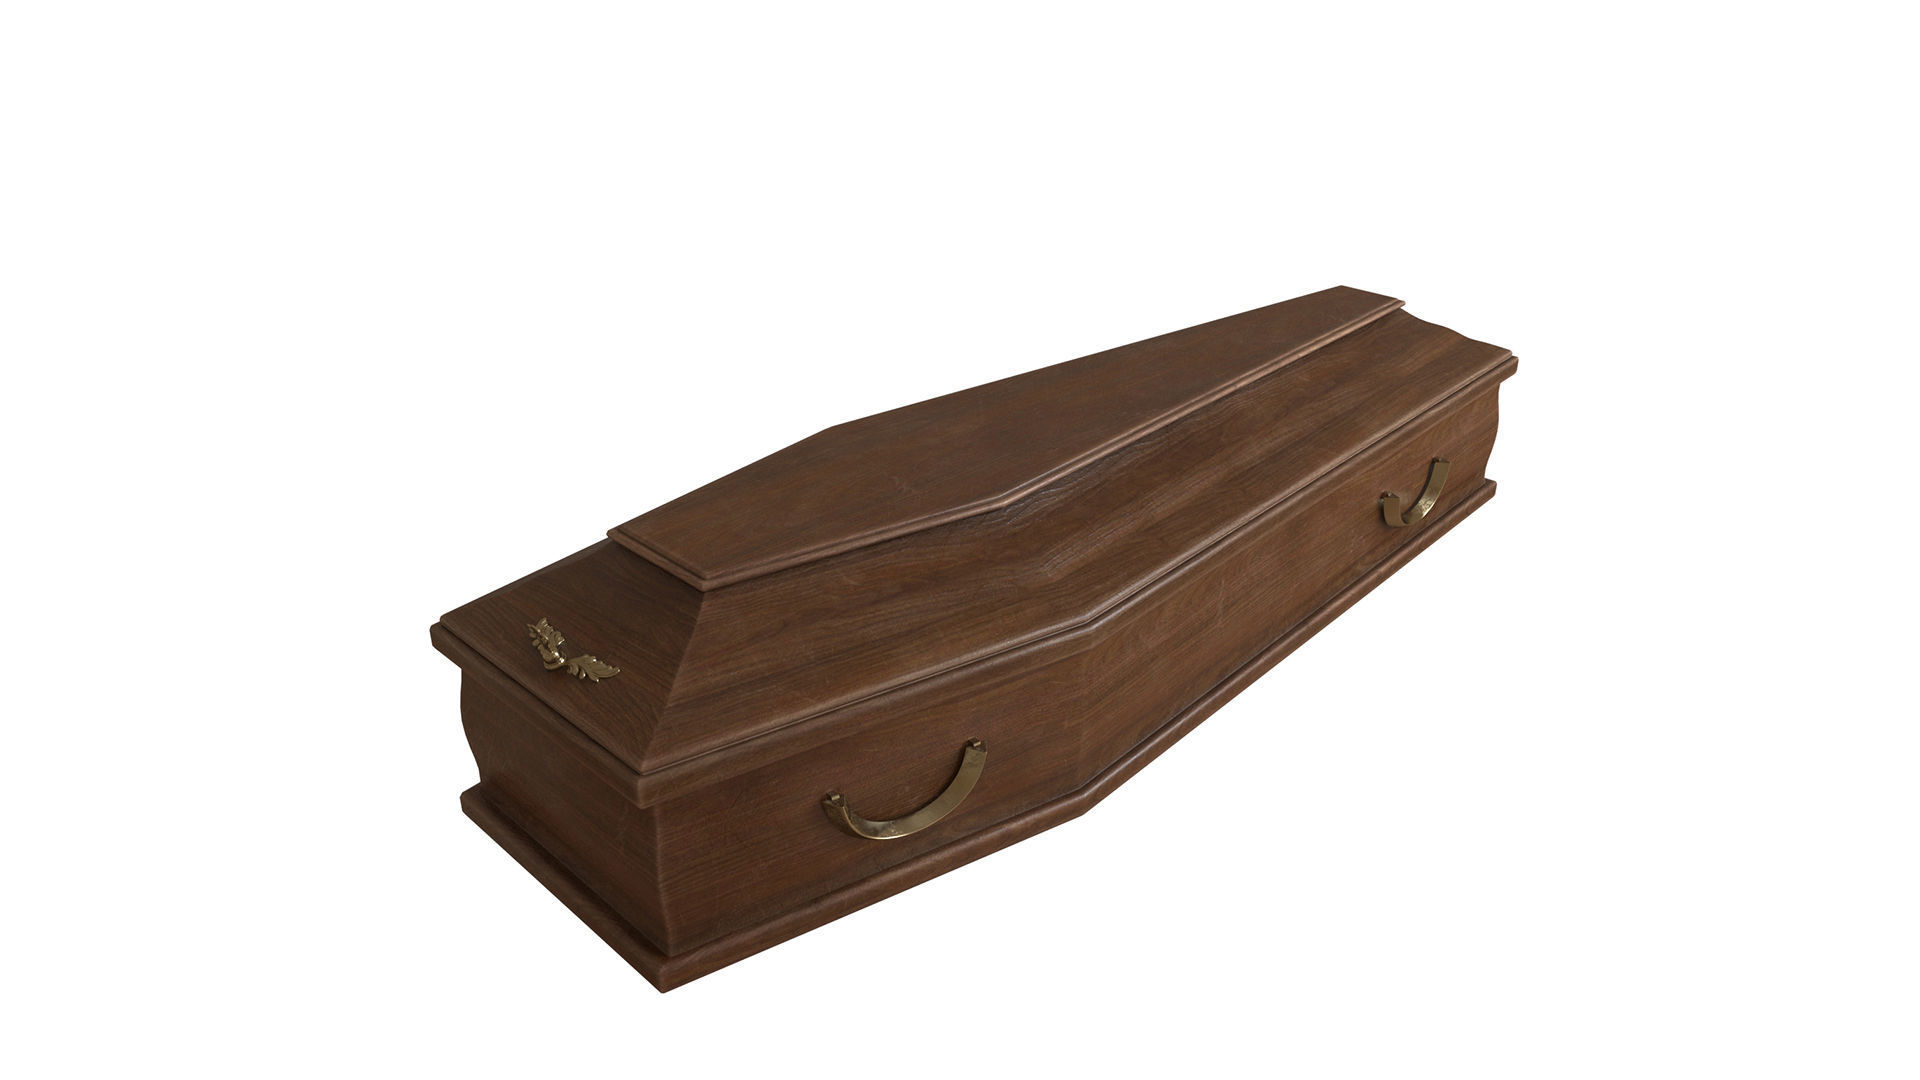 Classic wooden coffin